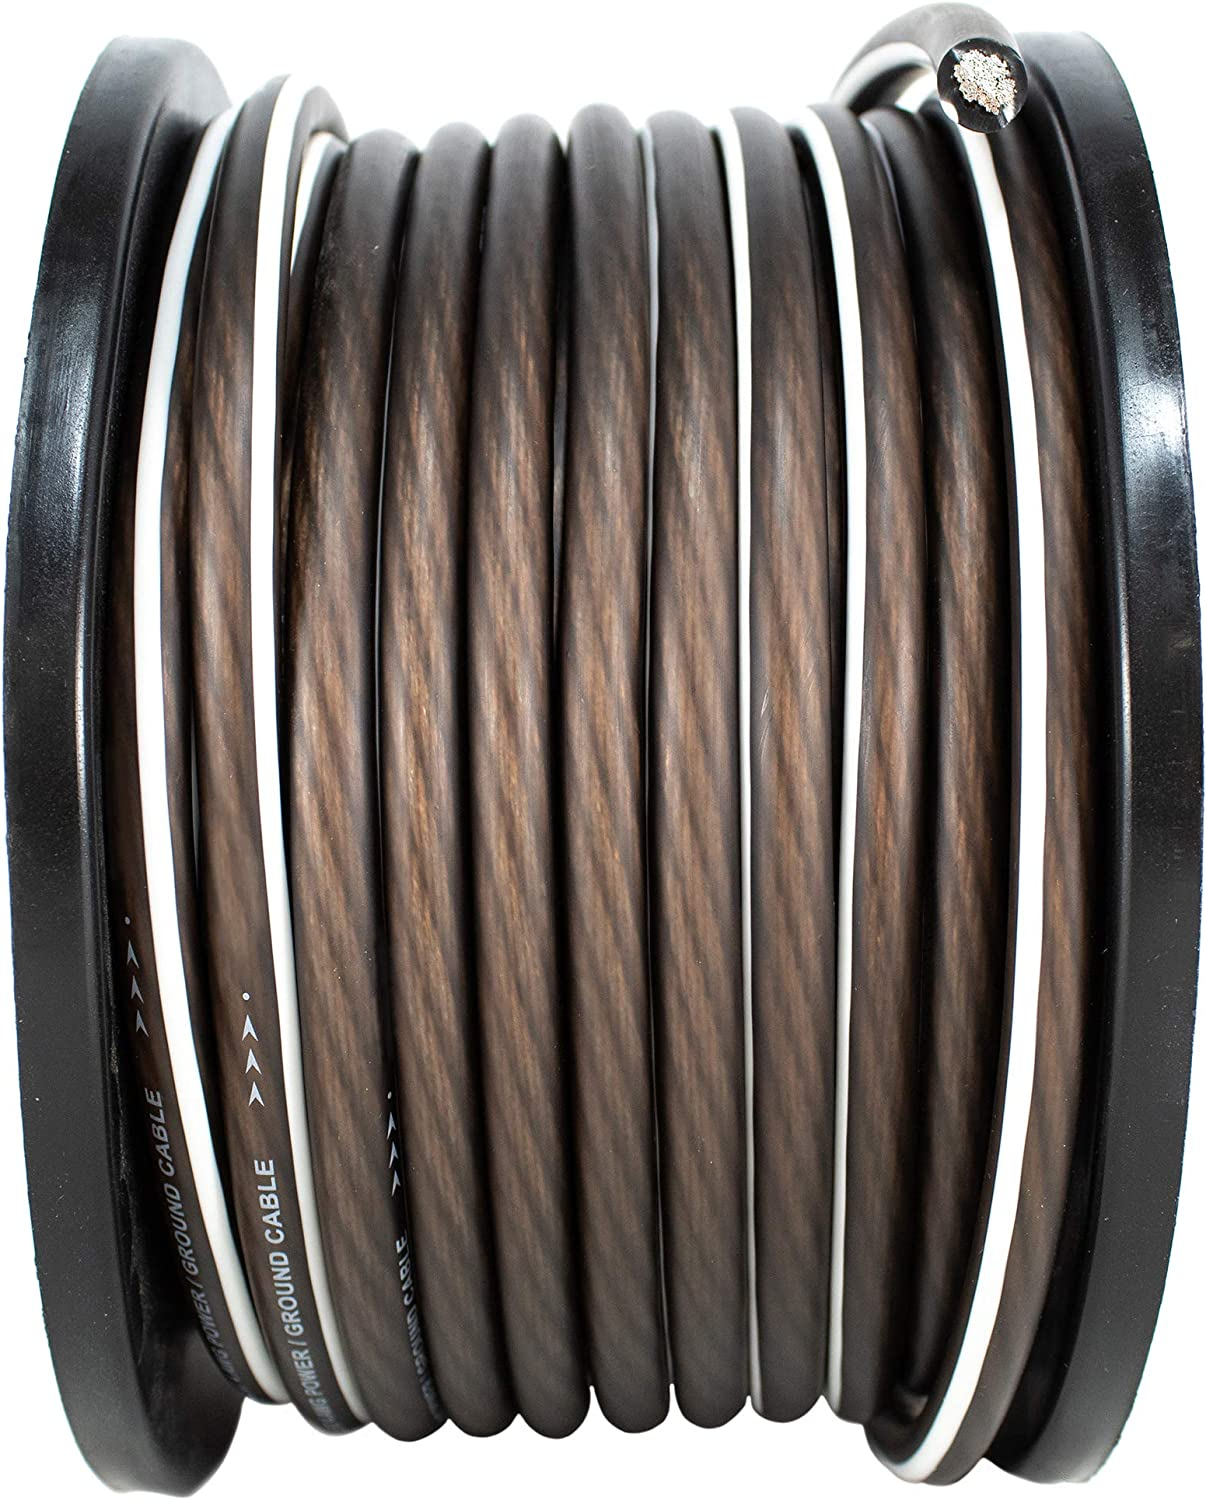 4 AWG 100FT Black Power Ground Wire Cable Copper Mix True AWG GA 81QUd8cpizLSL1500_